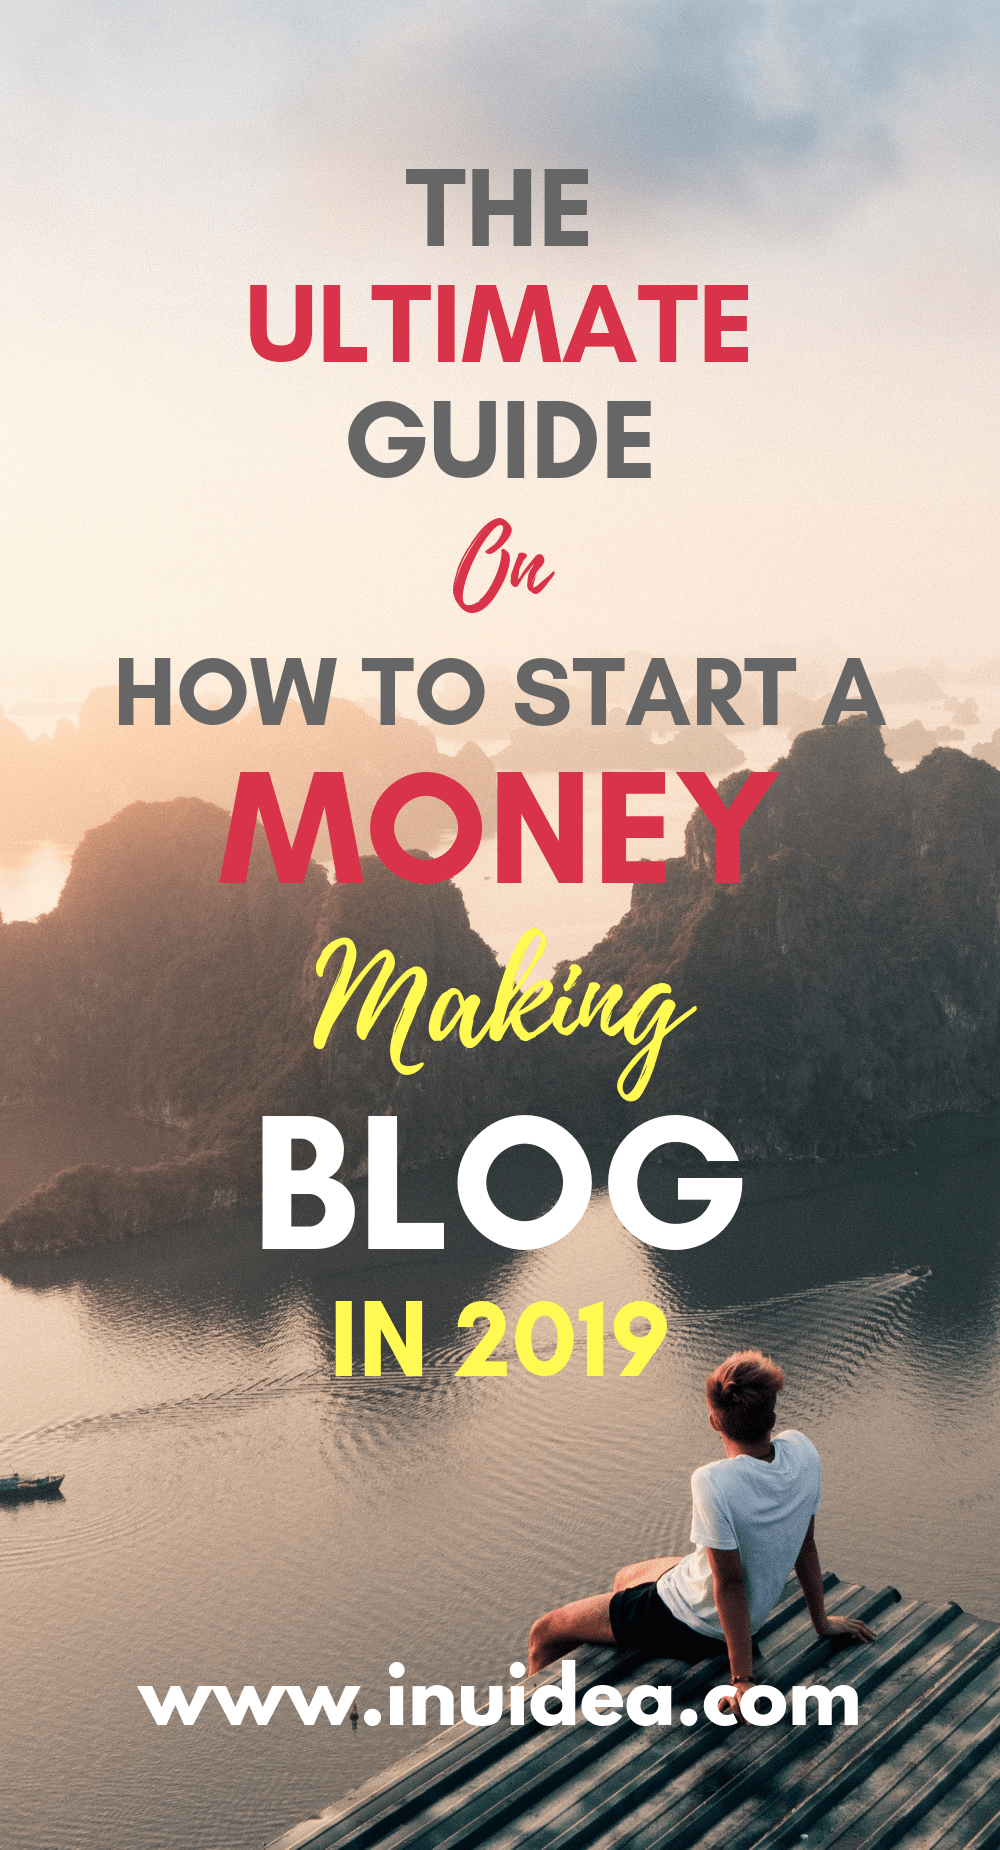 The Ultimate Guide on How to Start a Money Making Blog